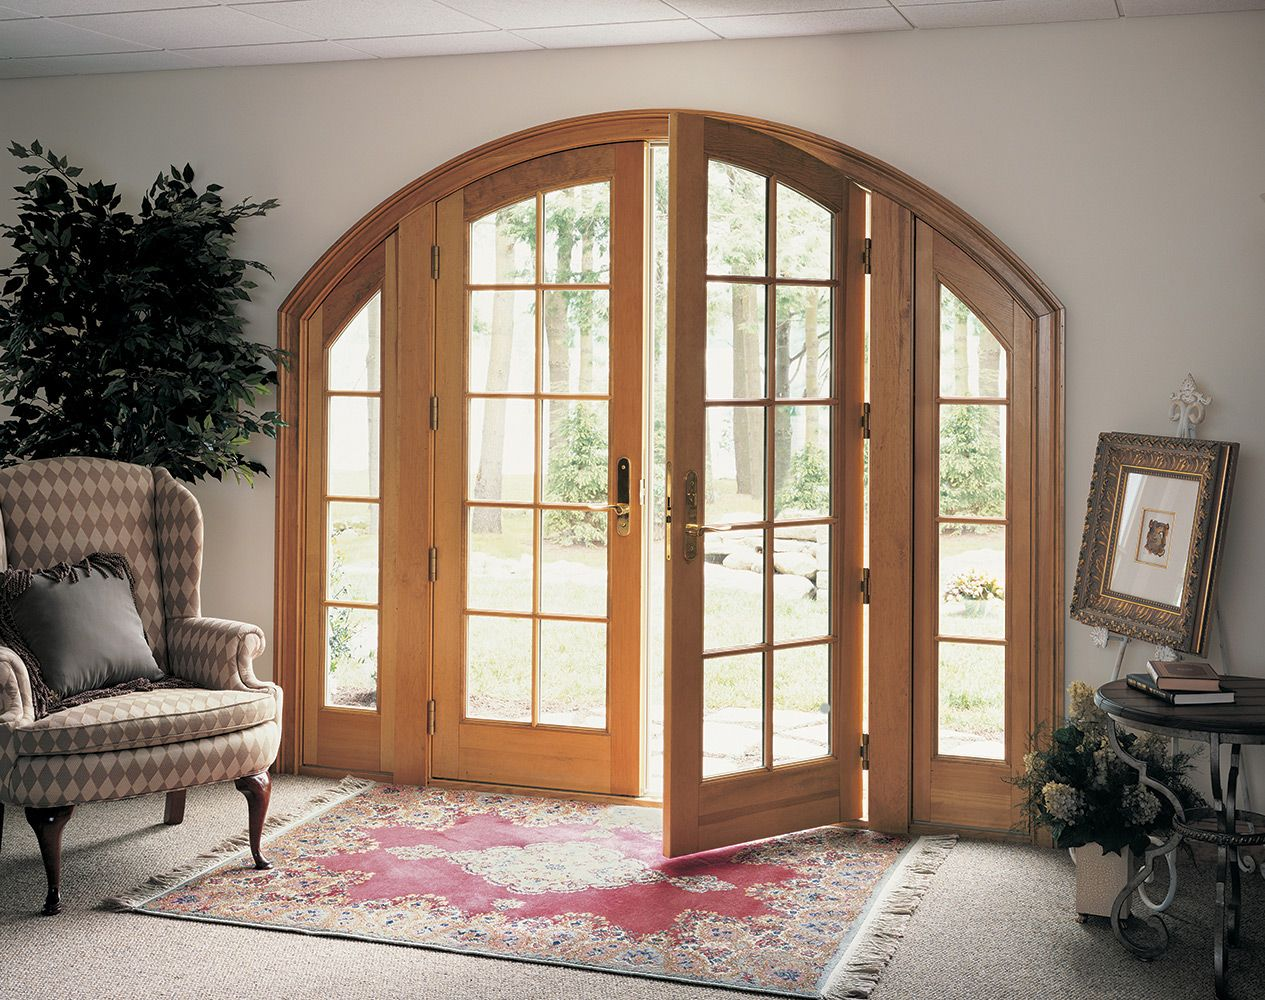 Window and door images marvin family of brands window plans our ultimate arch top french doors offer heightened elegance with graceful curves and the strength and durability you expect from marvin rubansaba